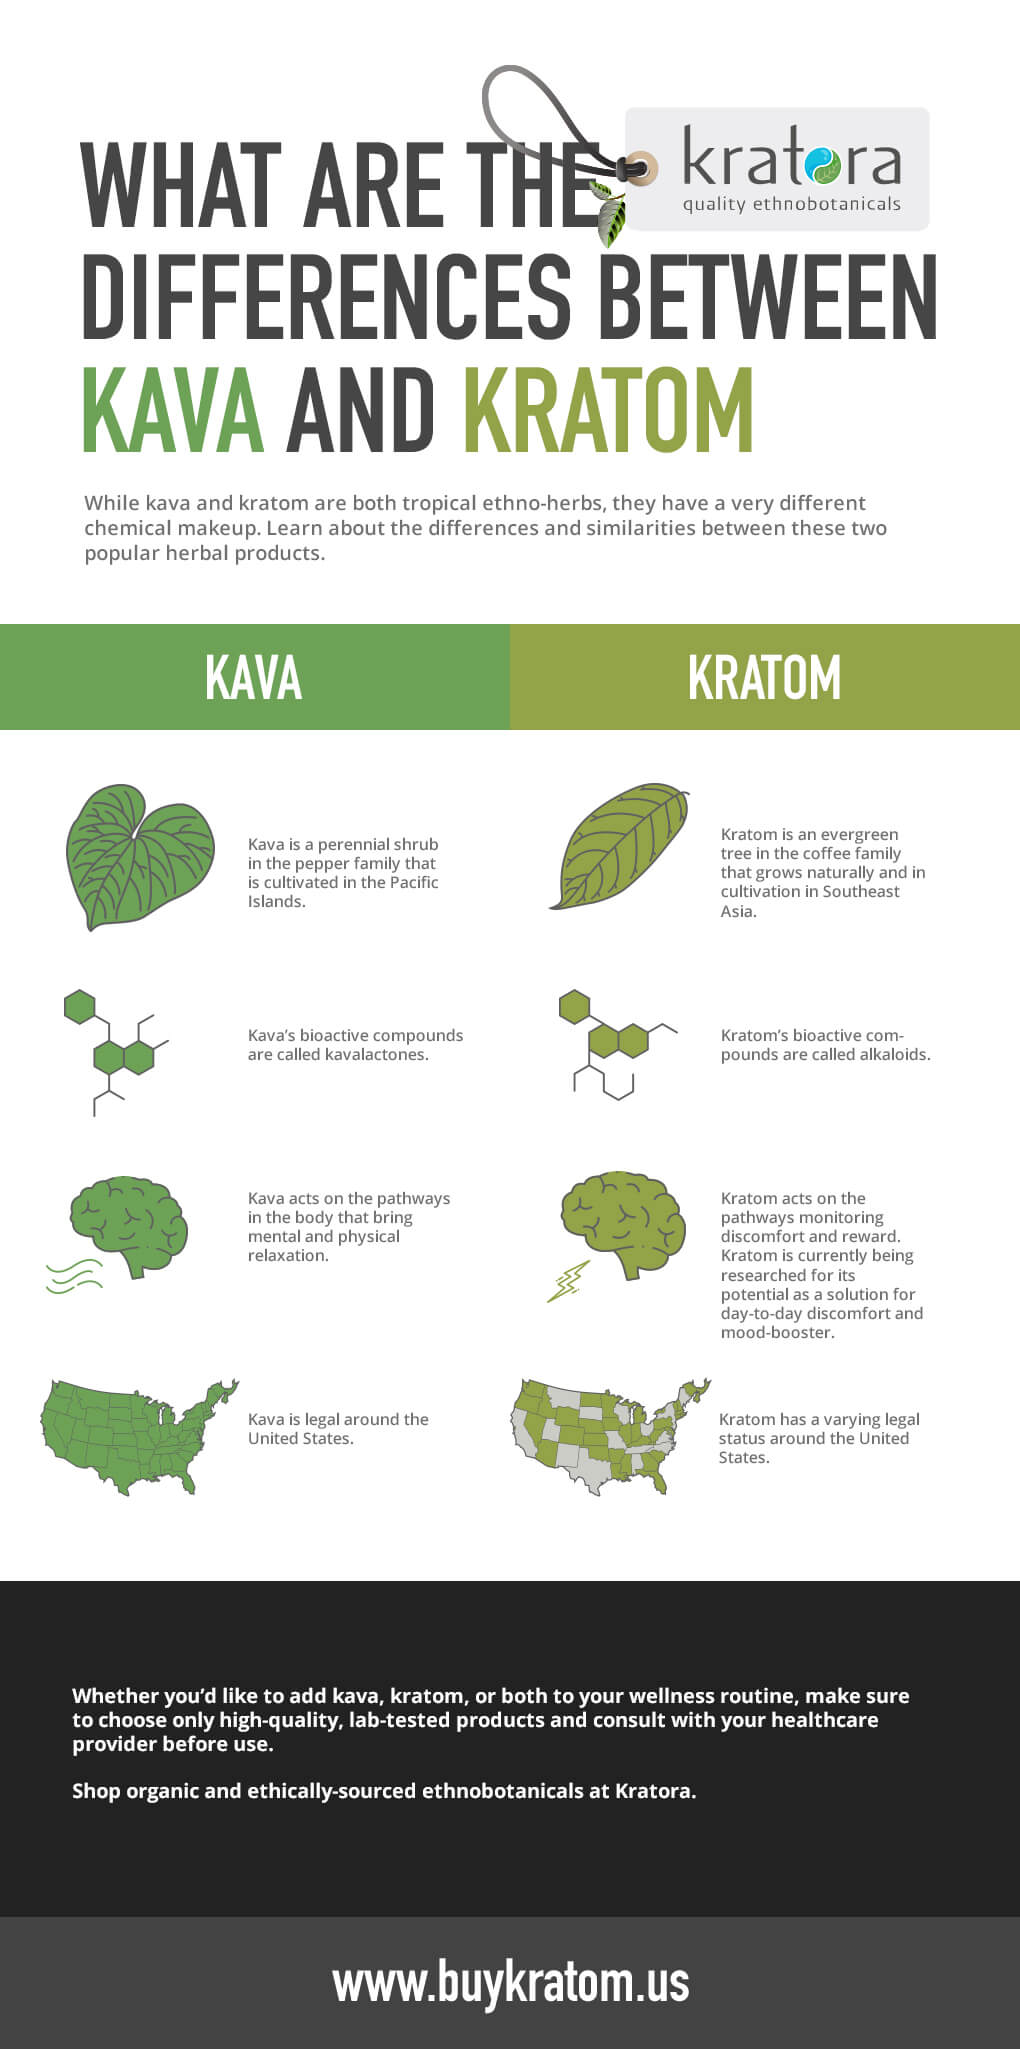 differences-between-kava-and-katom